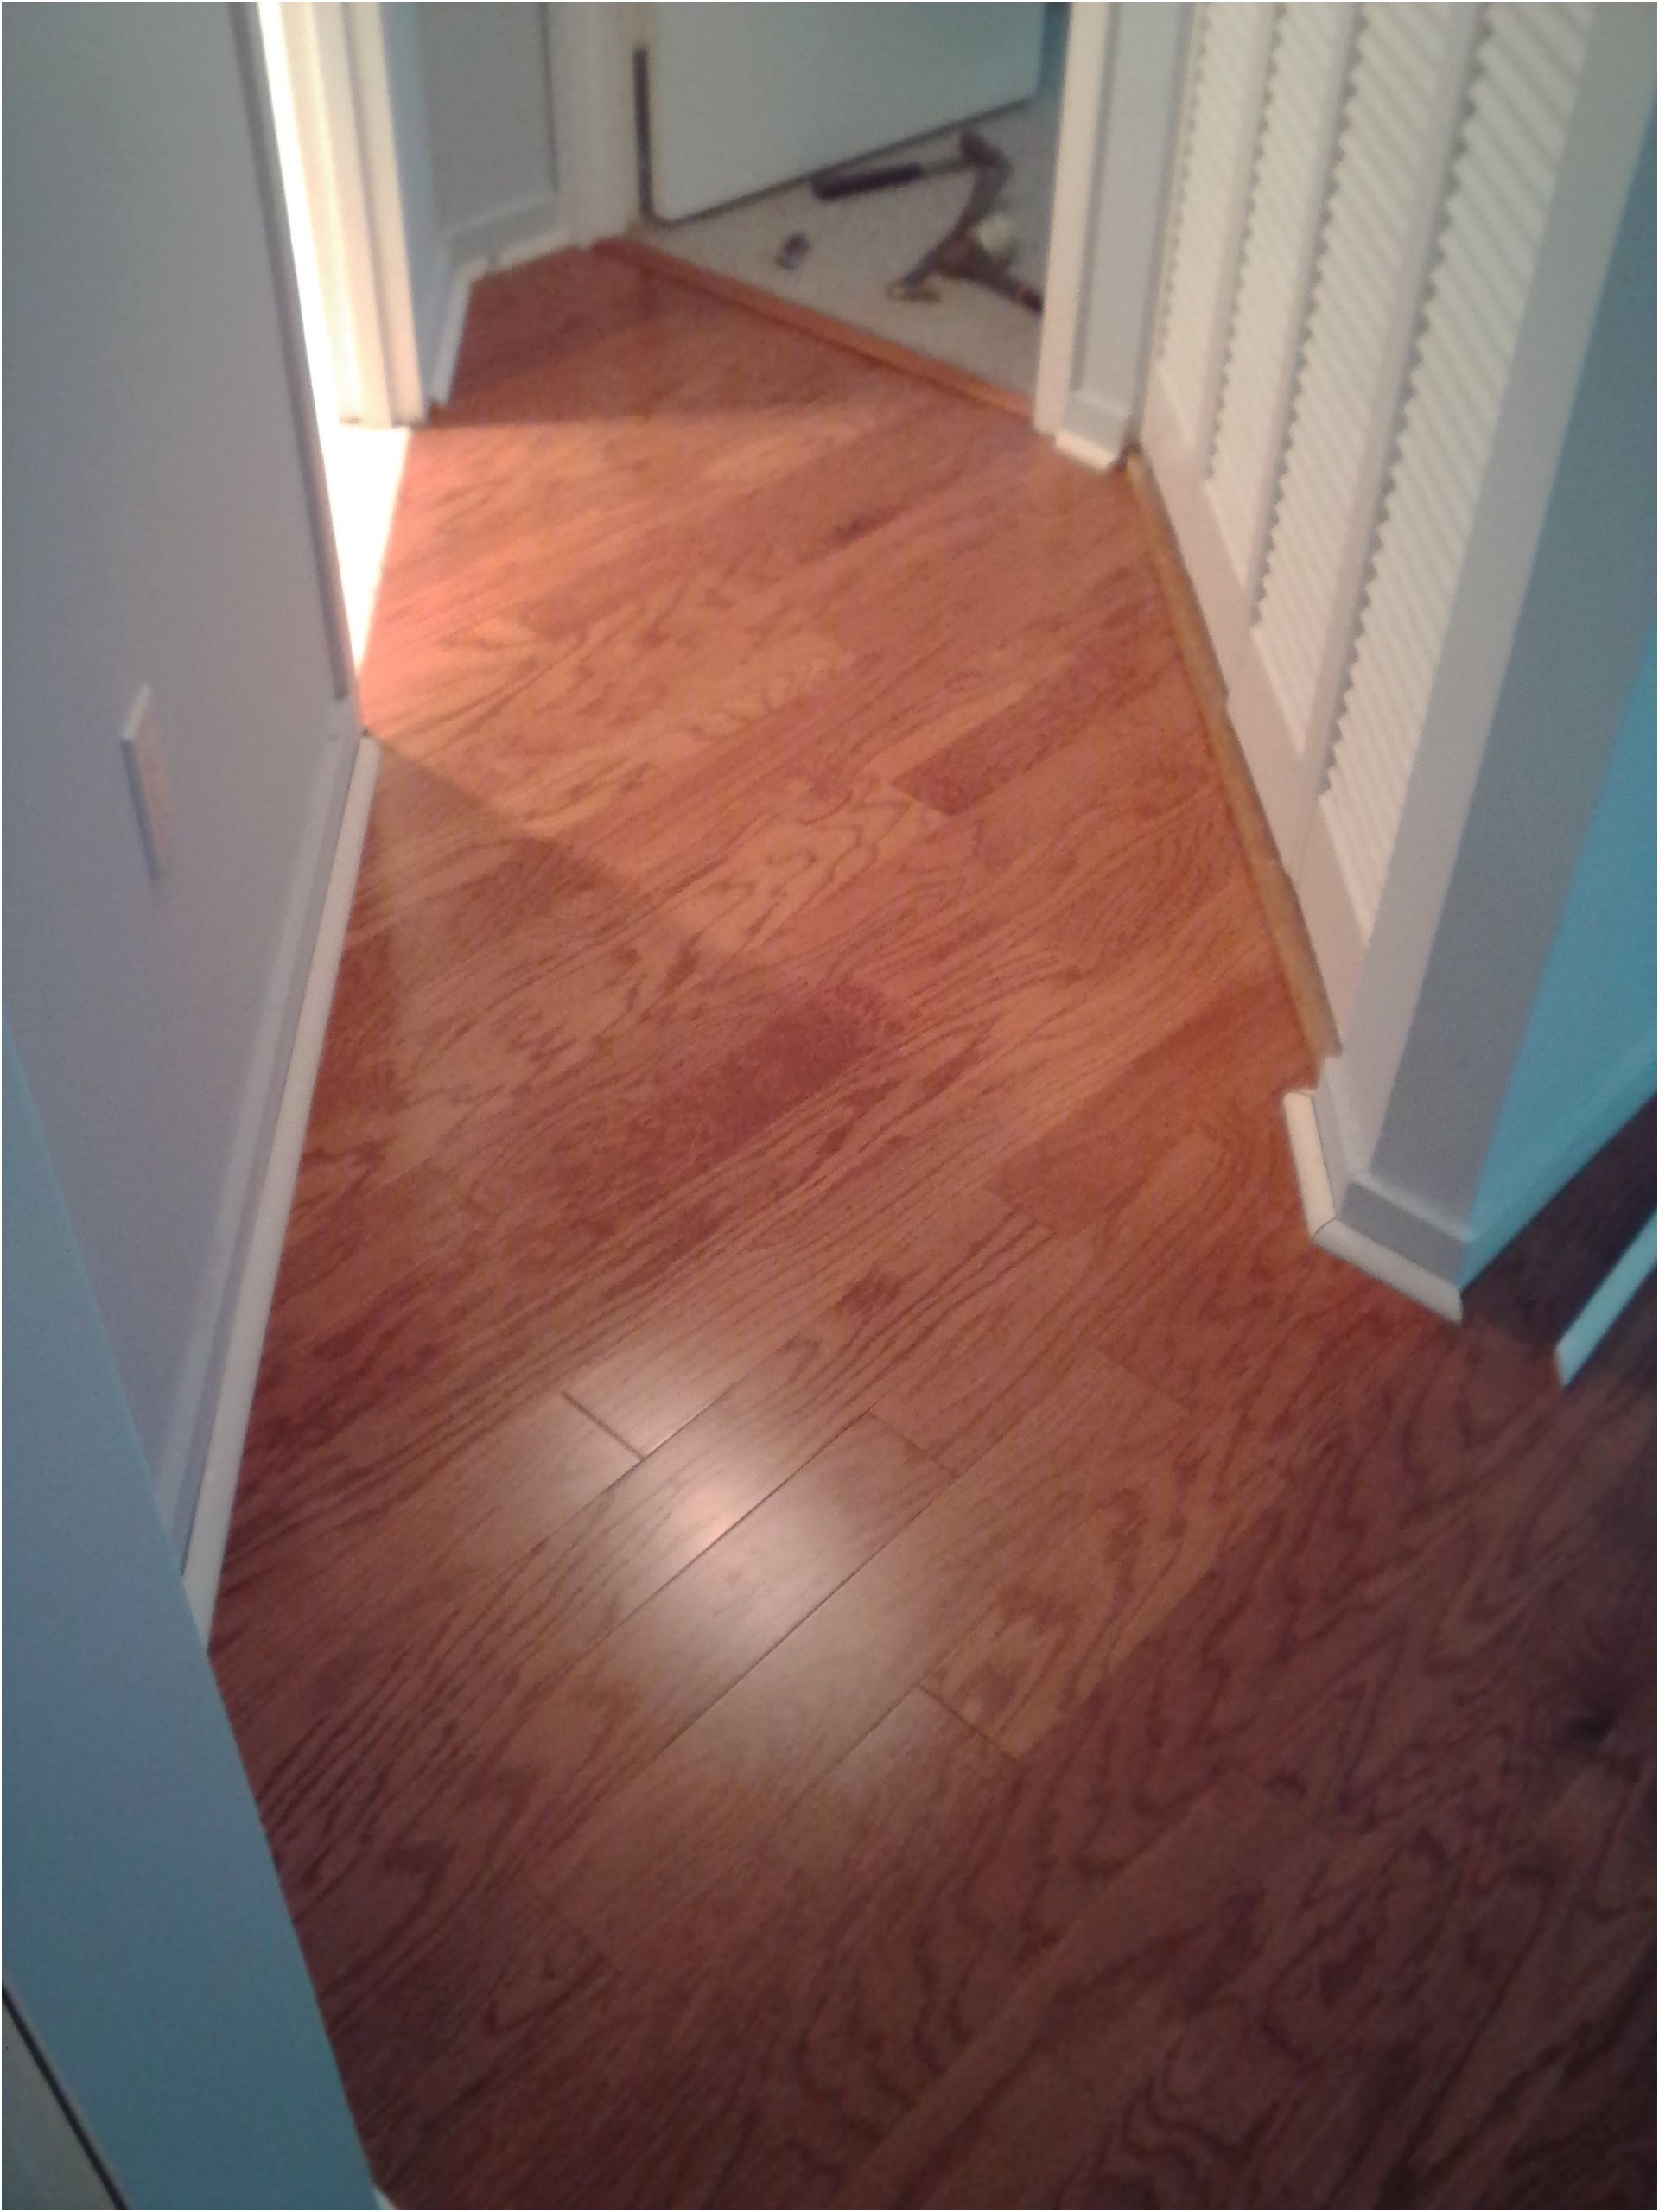 engineered hardwood flooring nailer of engineered wood flooring installation guide awesome engineered pertaining to engineered wood flooring installation guide awesome engineered hardwood flooring diagonal installation throughout the